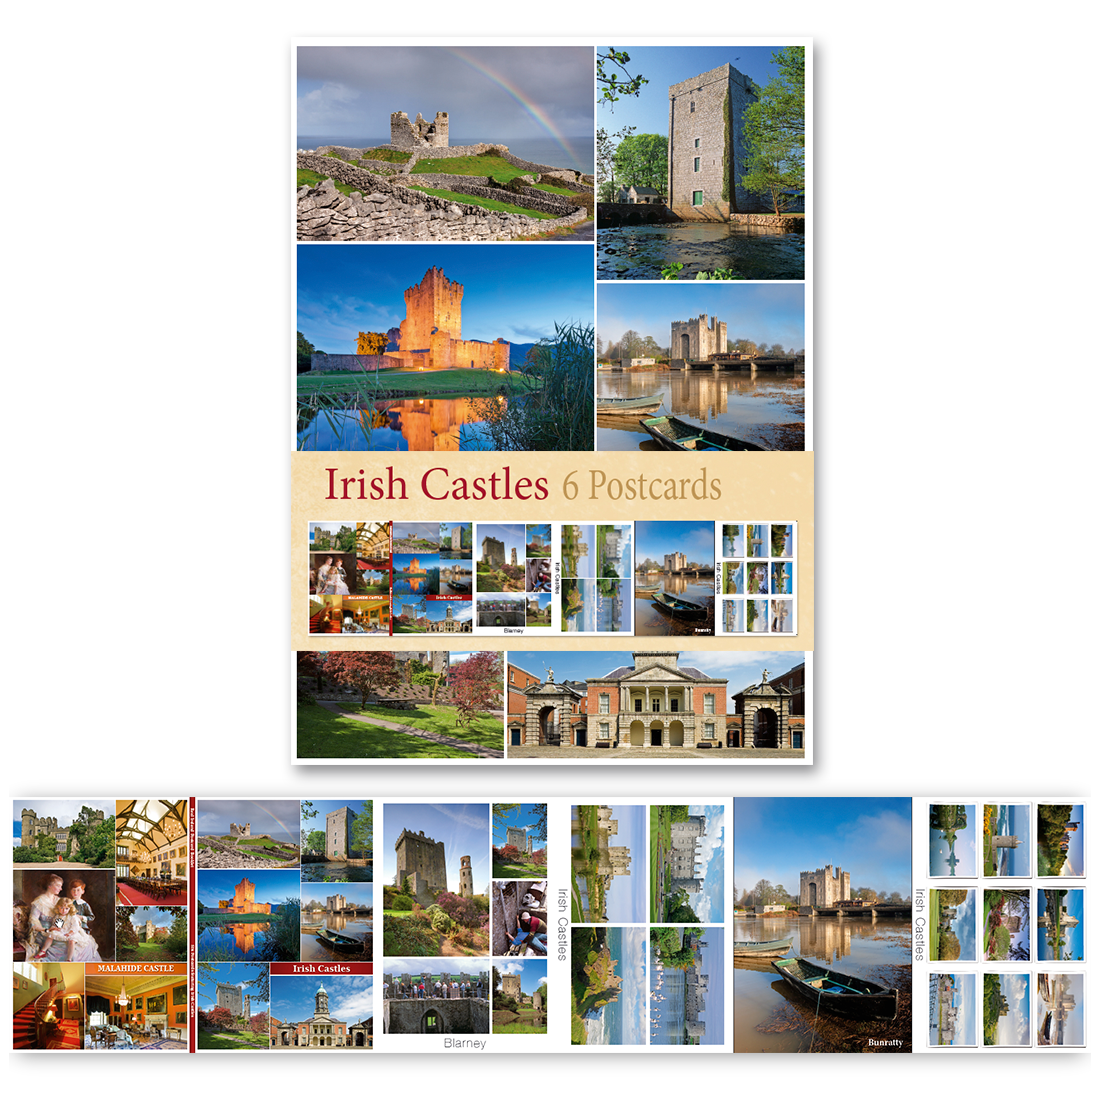 Irish Castles - Pack of 6 Postcards